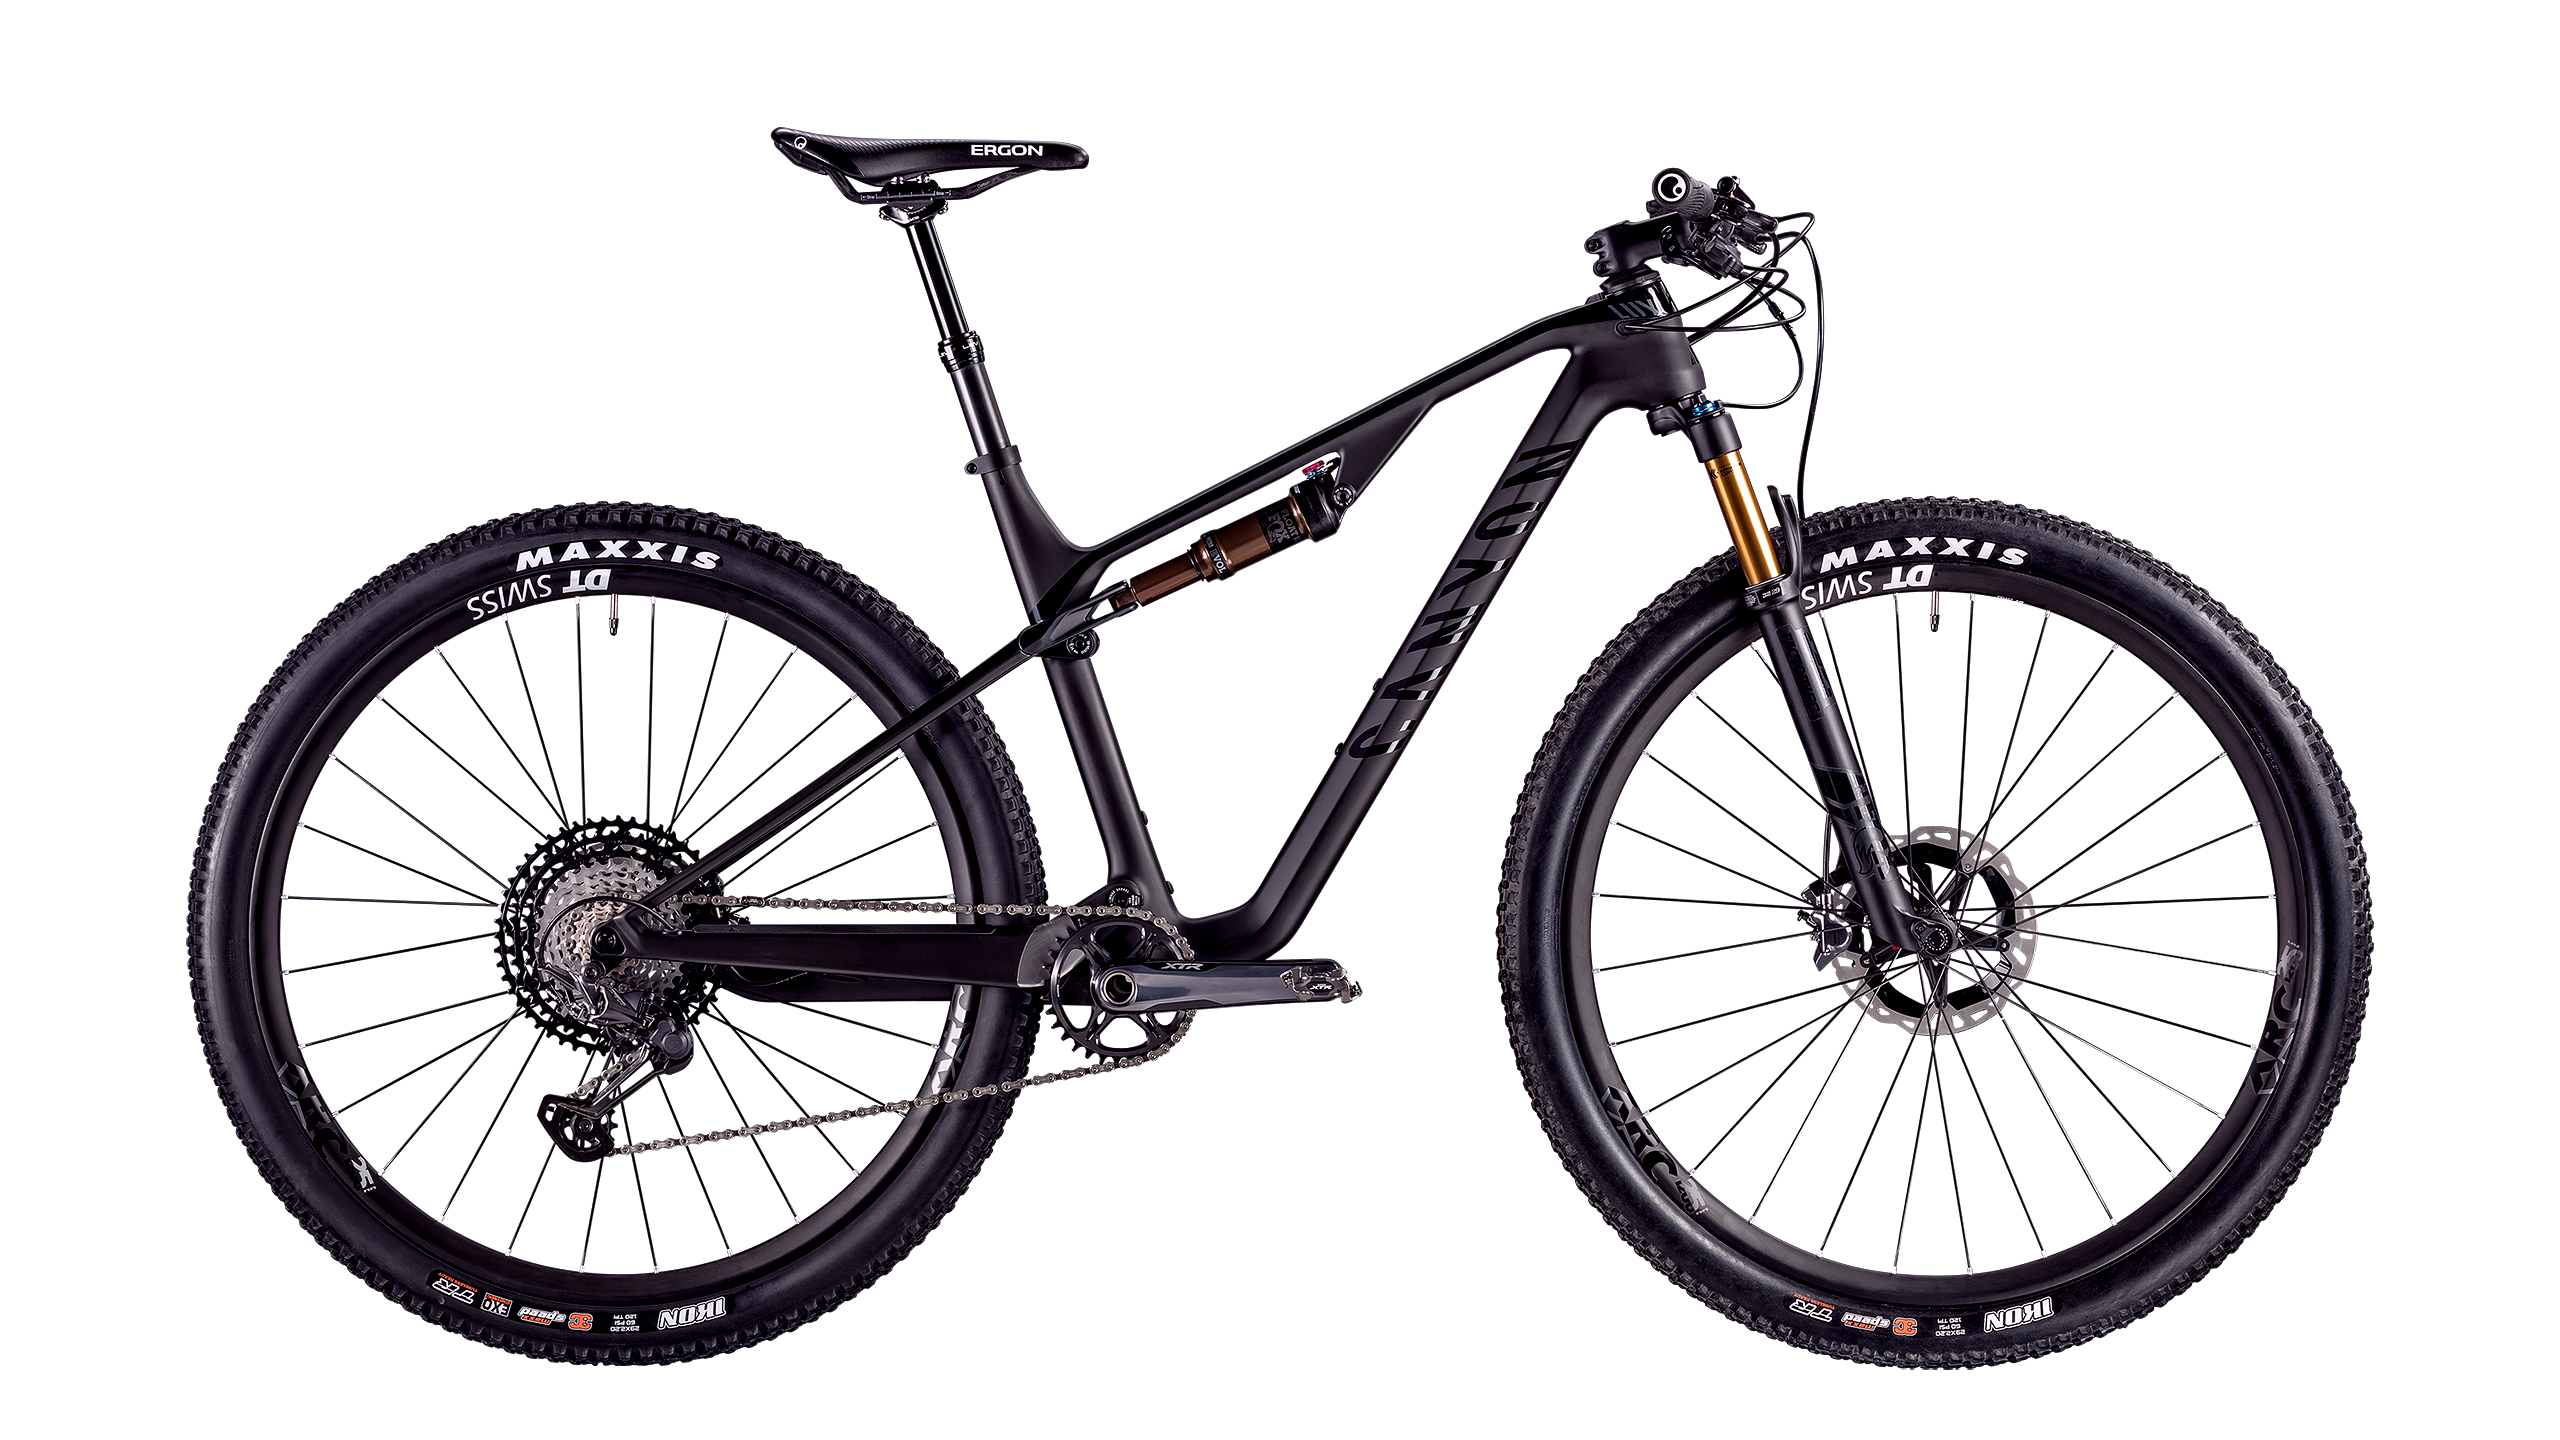 Lux Mtb Xc Full Suspension 29er Canyon Bicycles Us Cross